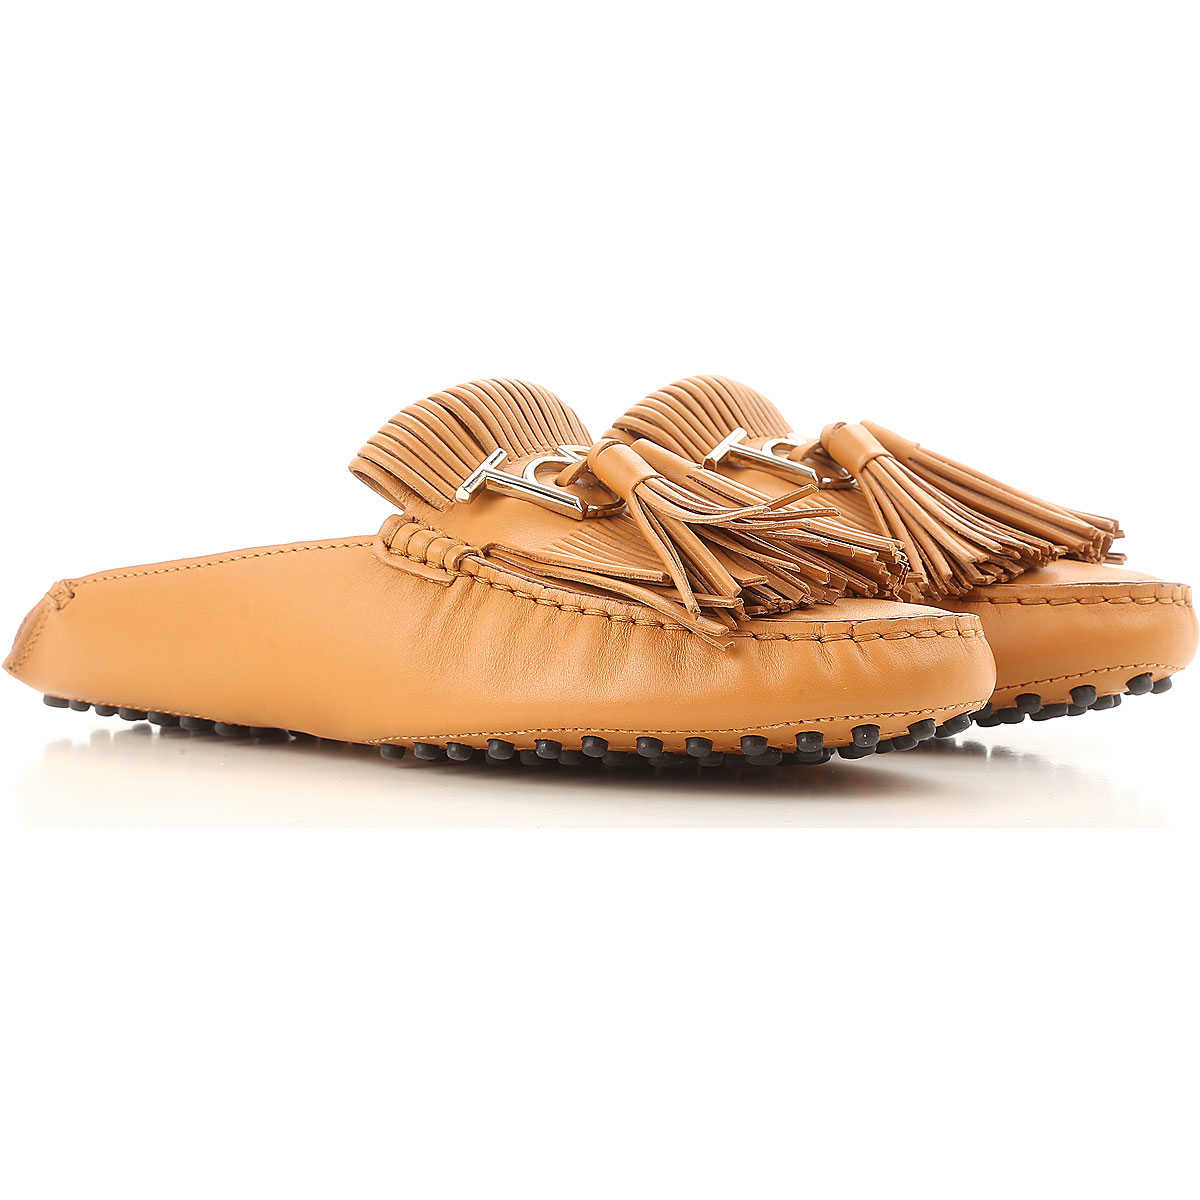 Tods Loafers for Women On Sale Camel SE - GOOFASH